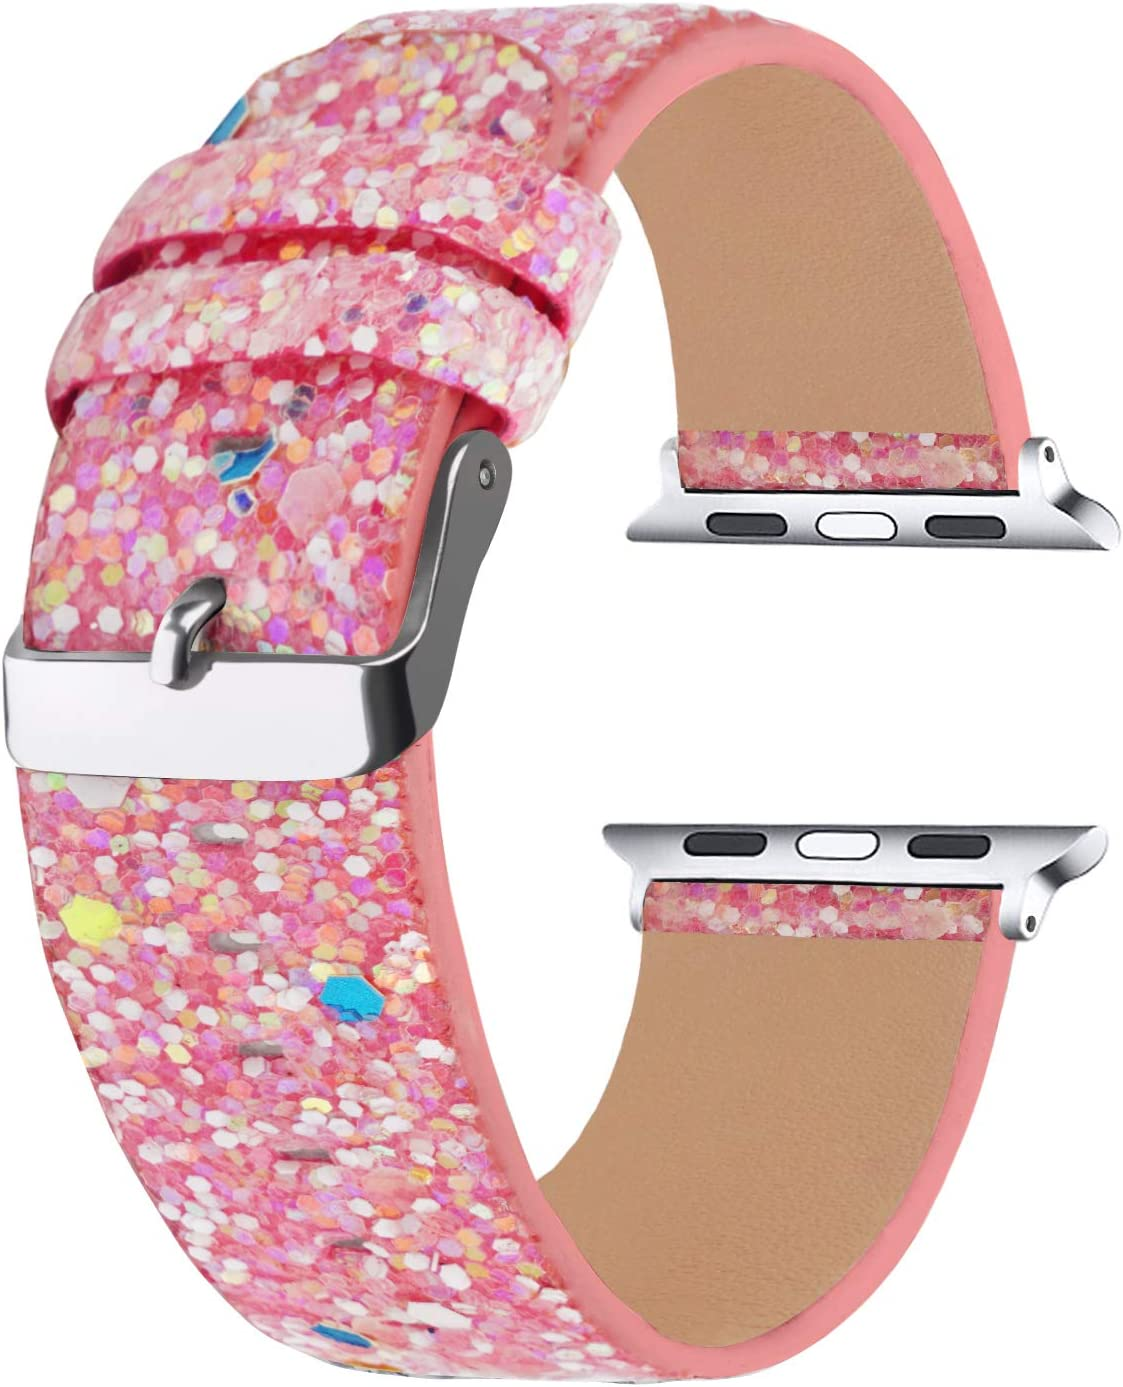 Moonooda Sparkle Watch Band Compatible with Apple Watch Band 42mm 44mm,Women Wristband Replacement for iWatch, Bling Glitter Strap Smartwatch Band Compatible with Series SE 6 5 4 3 2 1, Luminous Pink